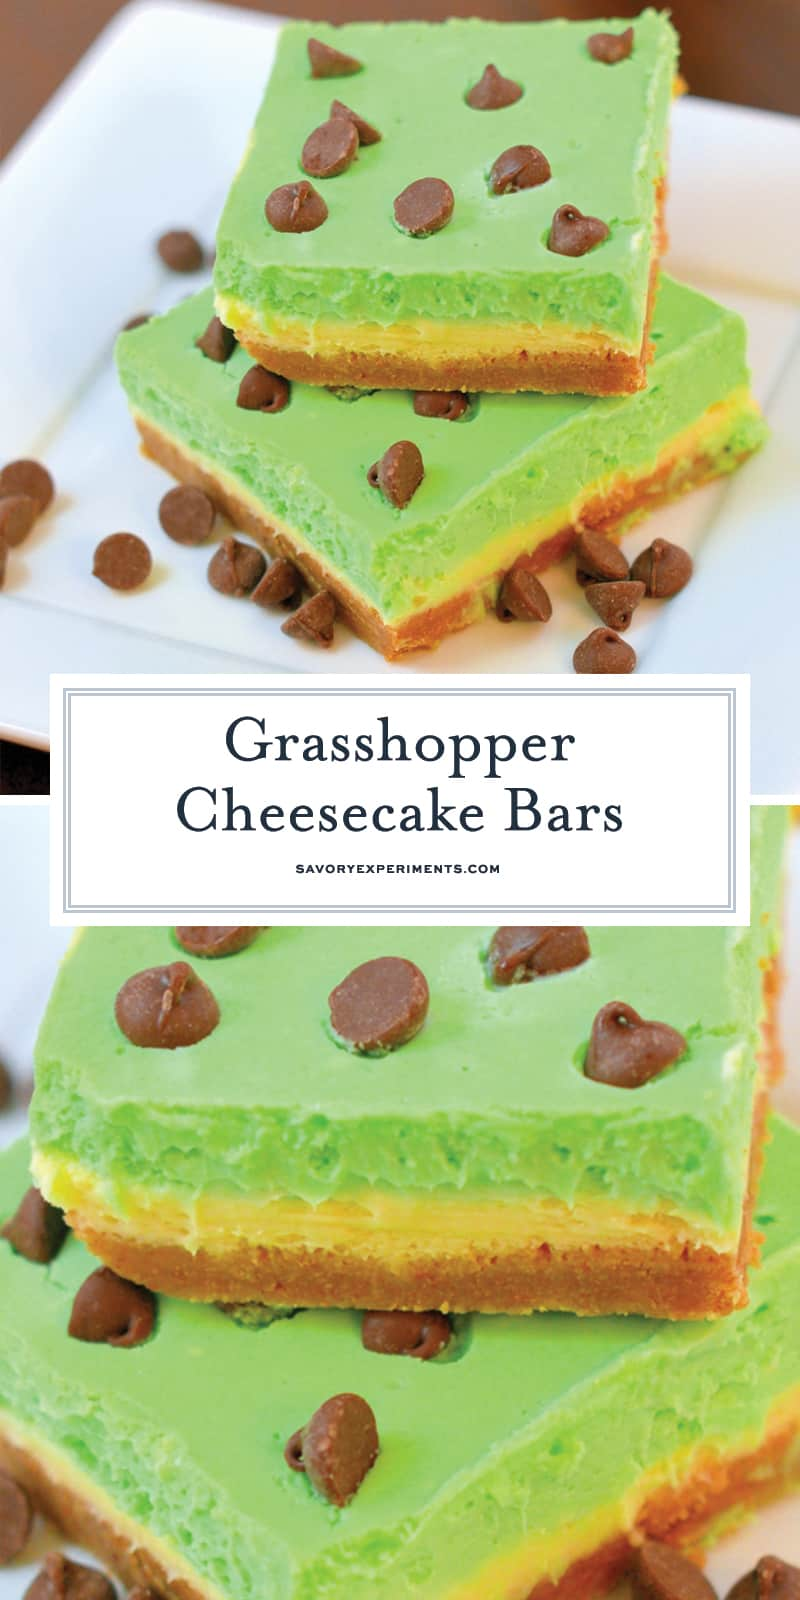 Grasshopper Cheesecake Bars are the perfect St Patrick's day dessert. Green and minty, they are easy to make and delicious to eat! #cheesecakebars #cheesecakebarsrecipe www.savoryexperiments.com